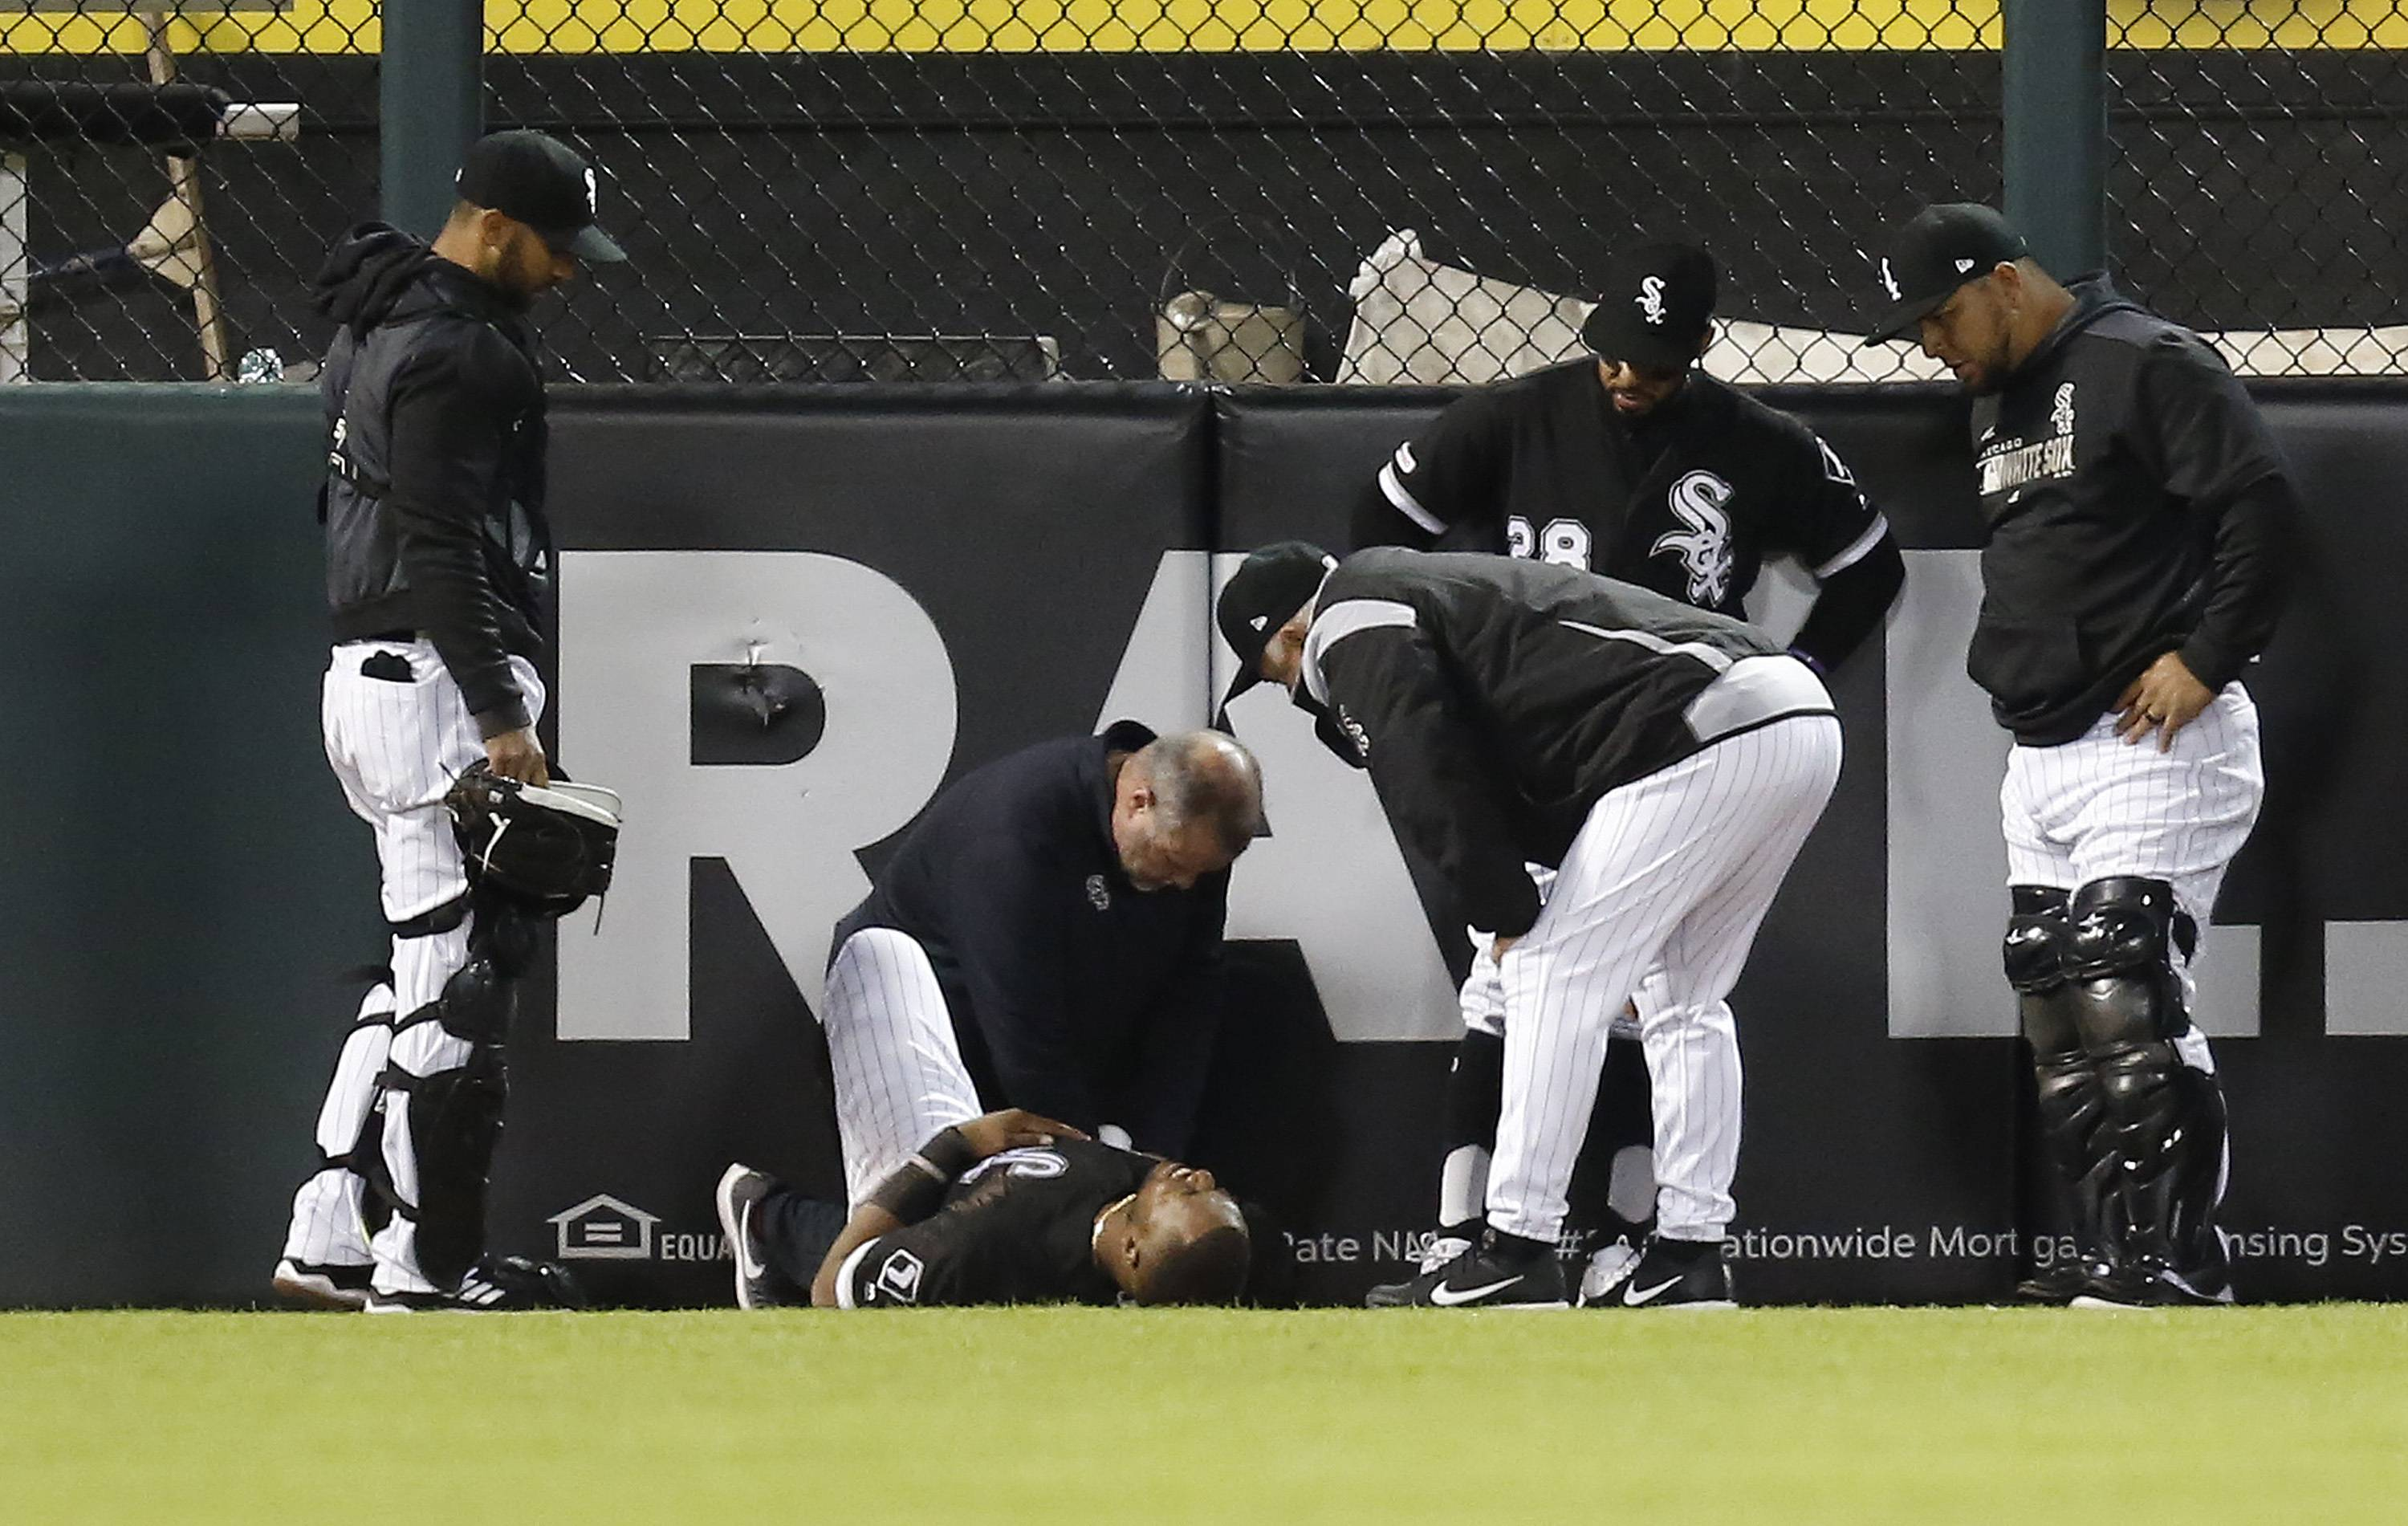 The Chicago White Sox on Monday are expected to announce rookie left fielder Eloy Jimenez is coming off the injured list. Jimenez has been out since spraining his right ankle trying to make a catch at the fence on April 26.